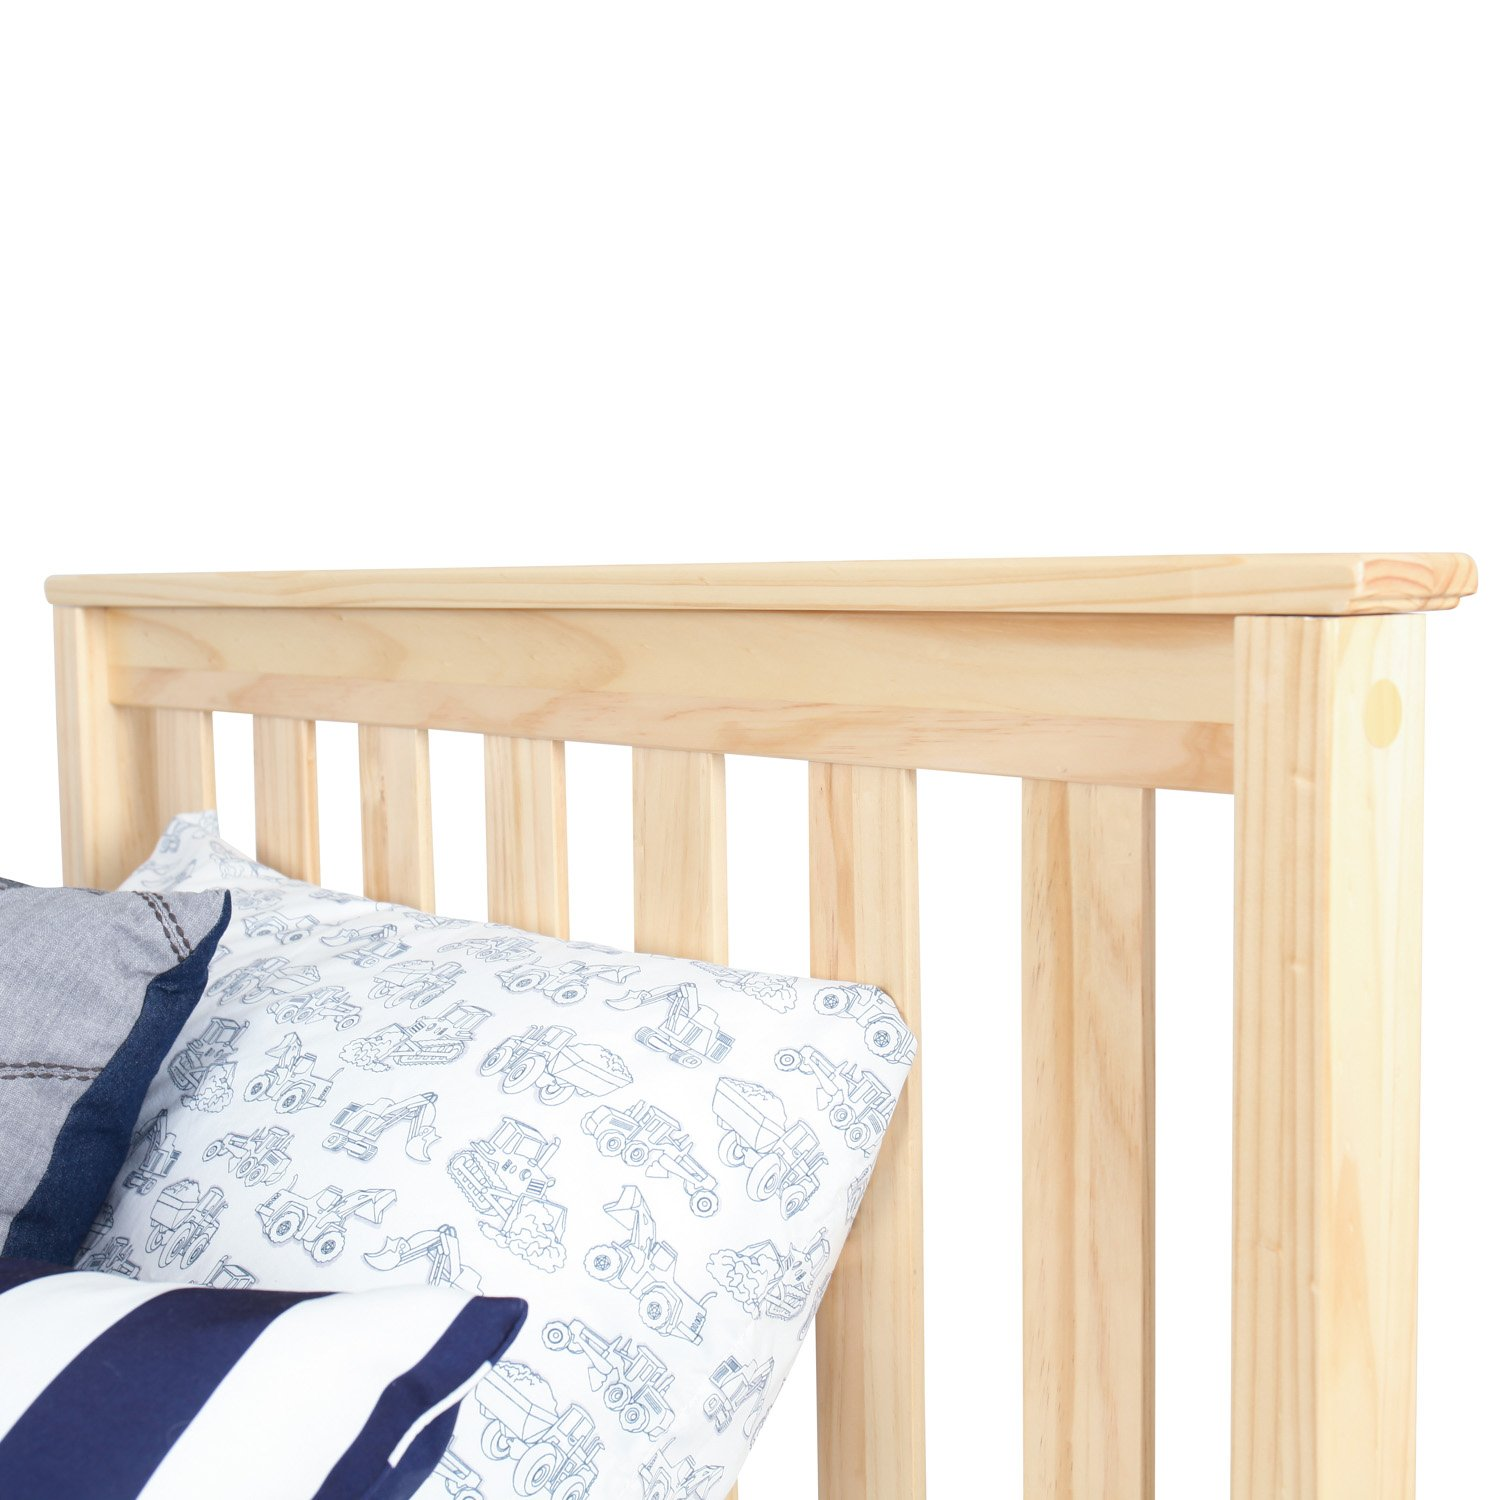 Max & Lily Solid Wood Twin-Size Bed with Under Bed Storage Drawers, Natural by Max & Lily (Image #5)